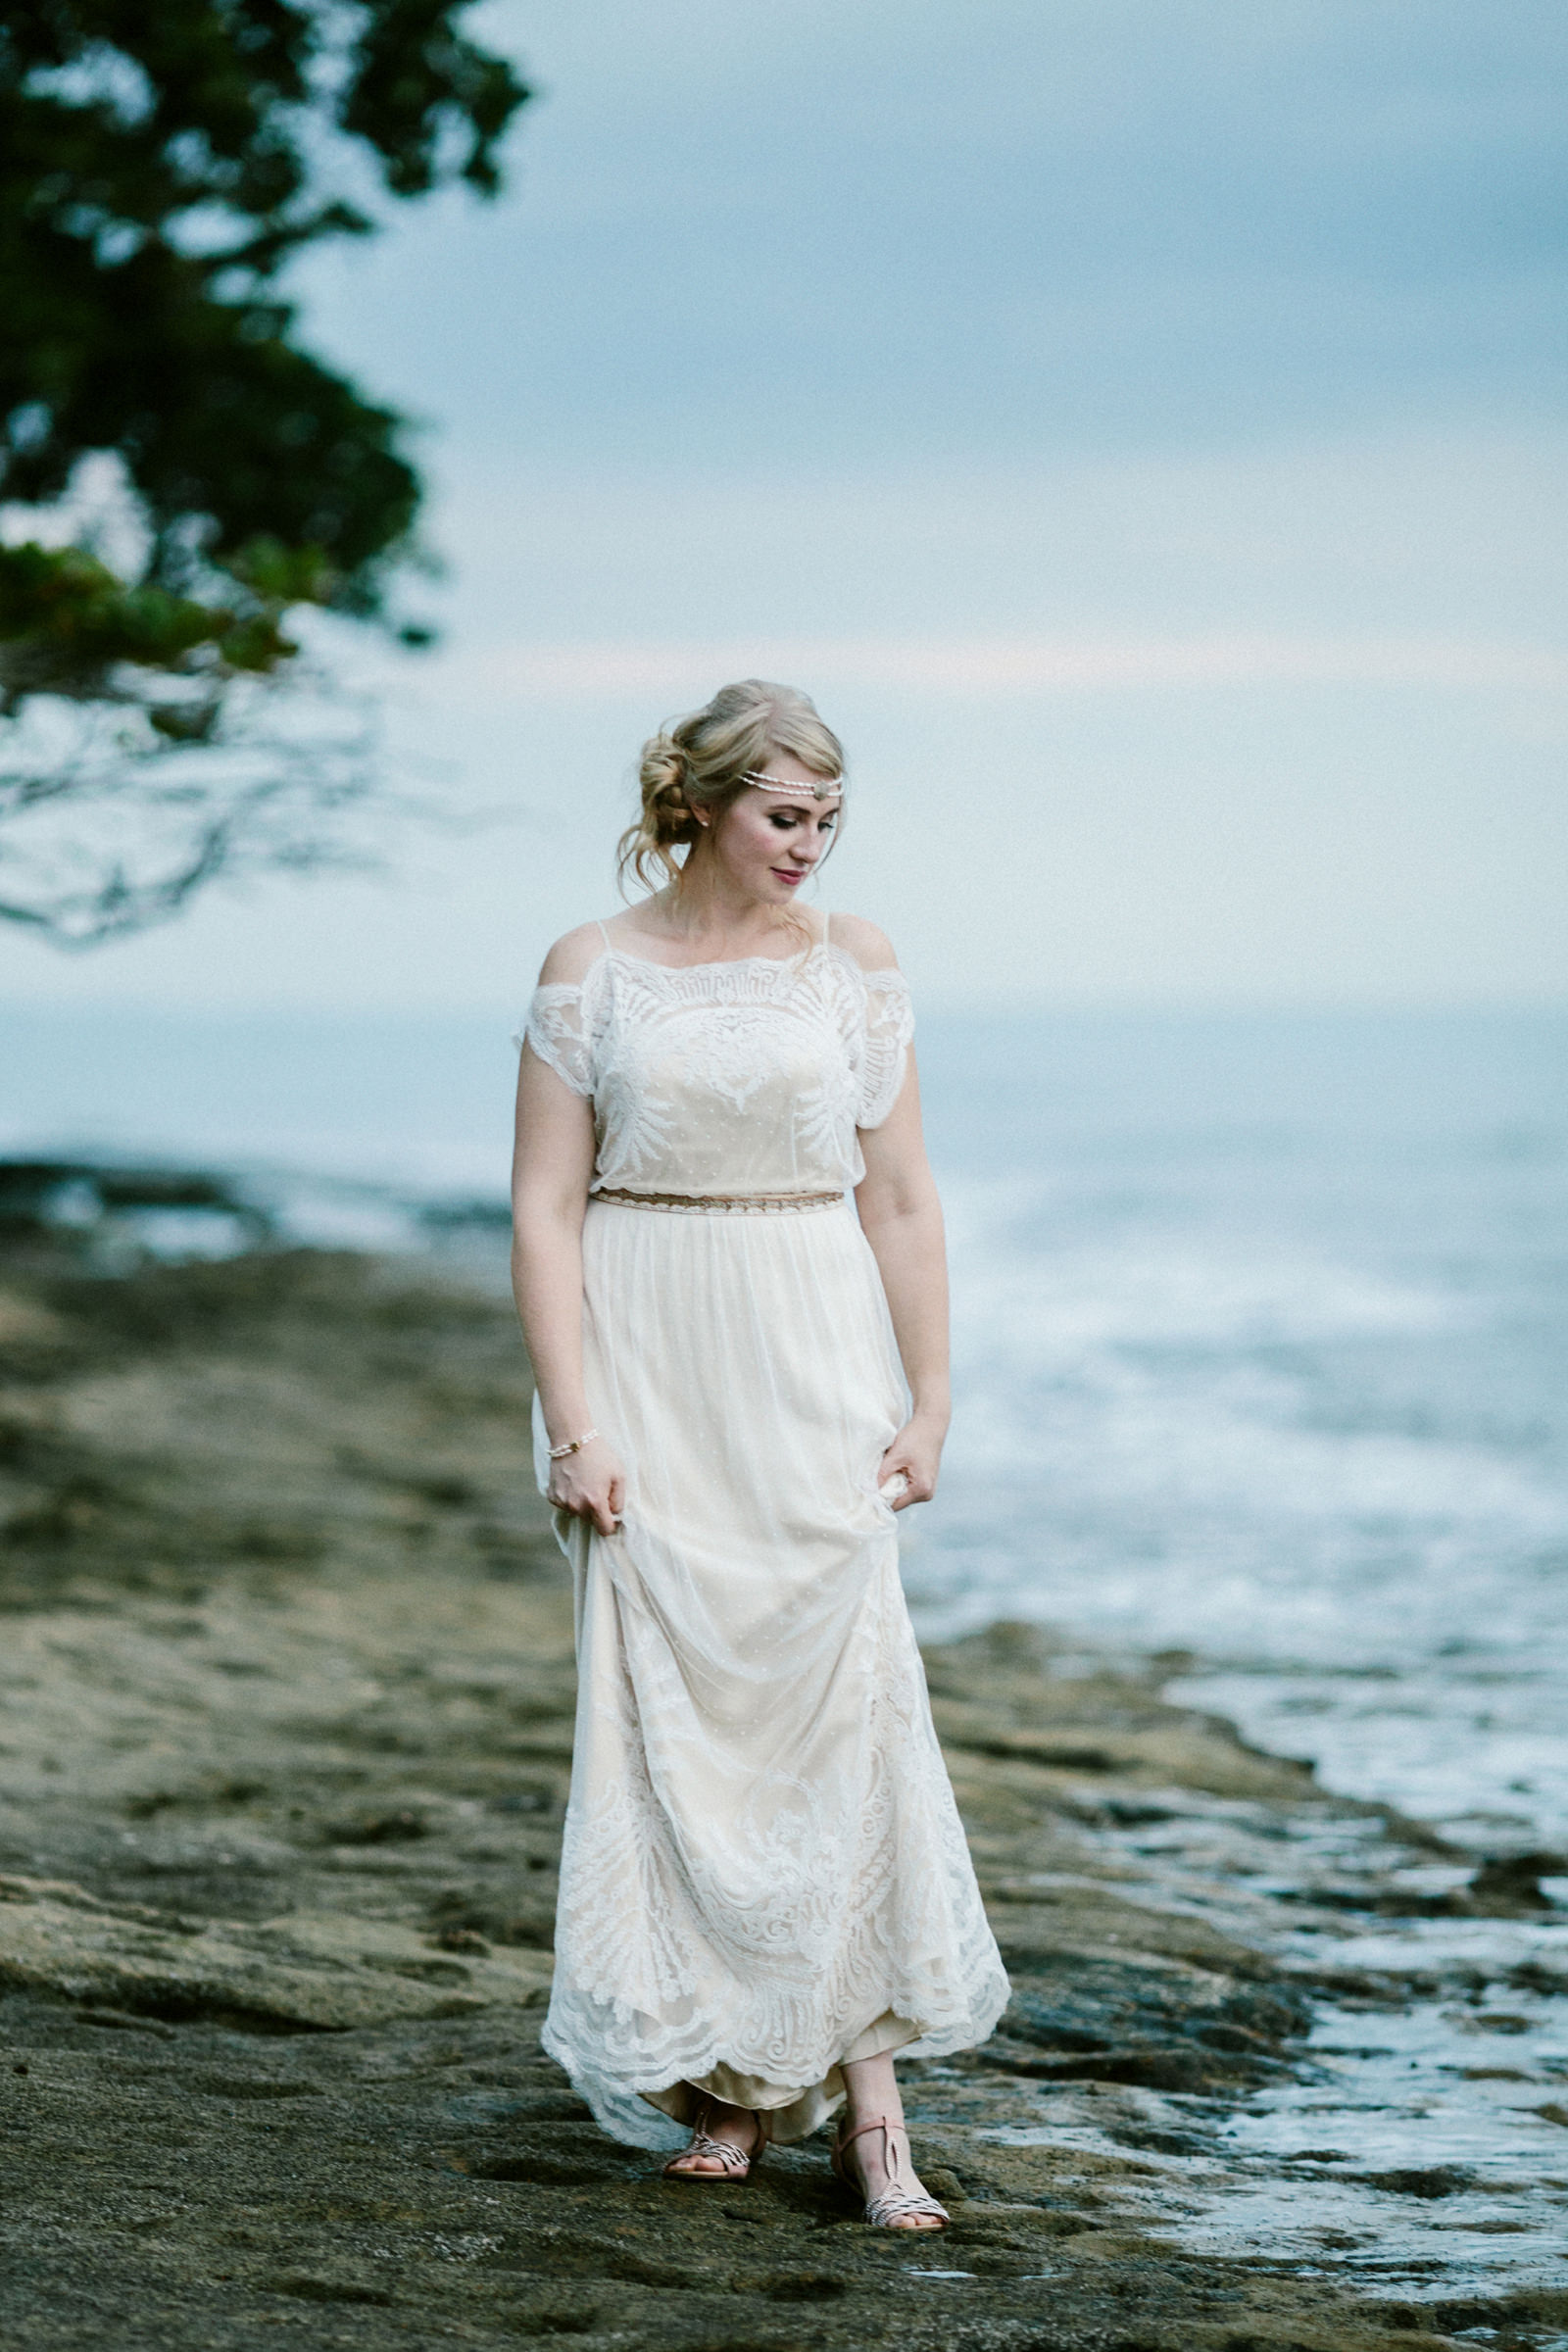 Bride at wateredge in gossamer lace gown - photo by Jonas Seaman - Seattle